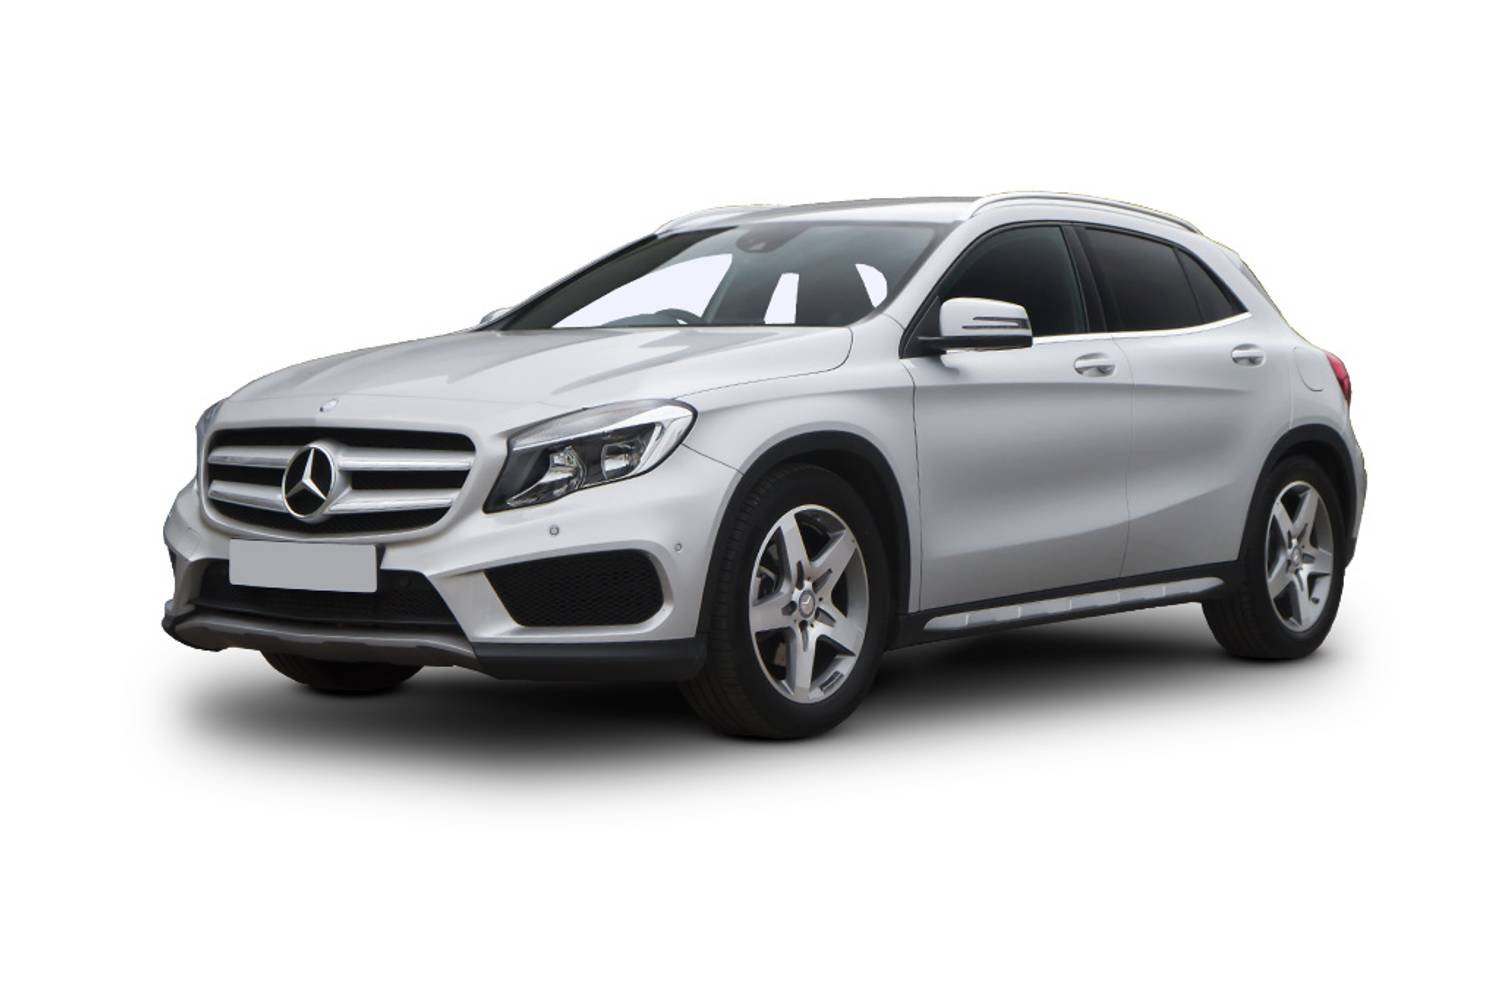 New mercedes benz gla class amg hatchback gla 45 381 ps for Mercedes benz gla 45 amg for sale